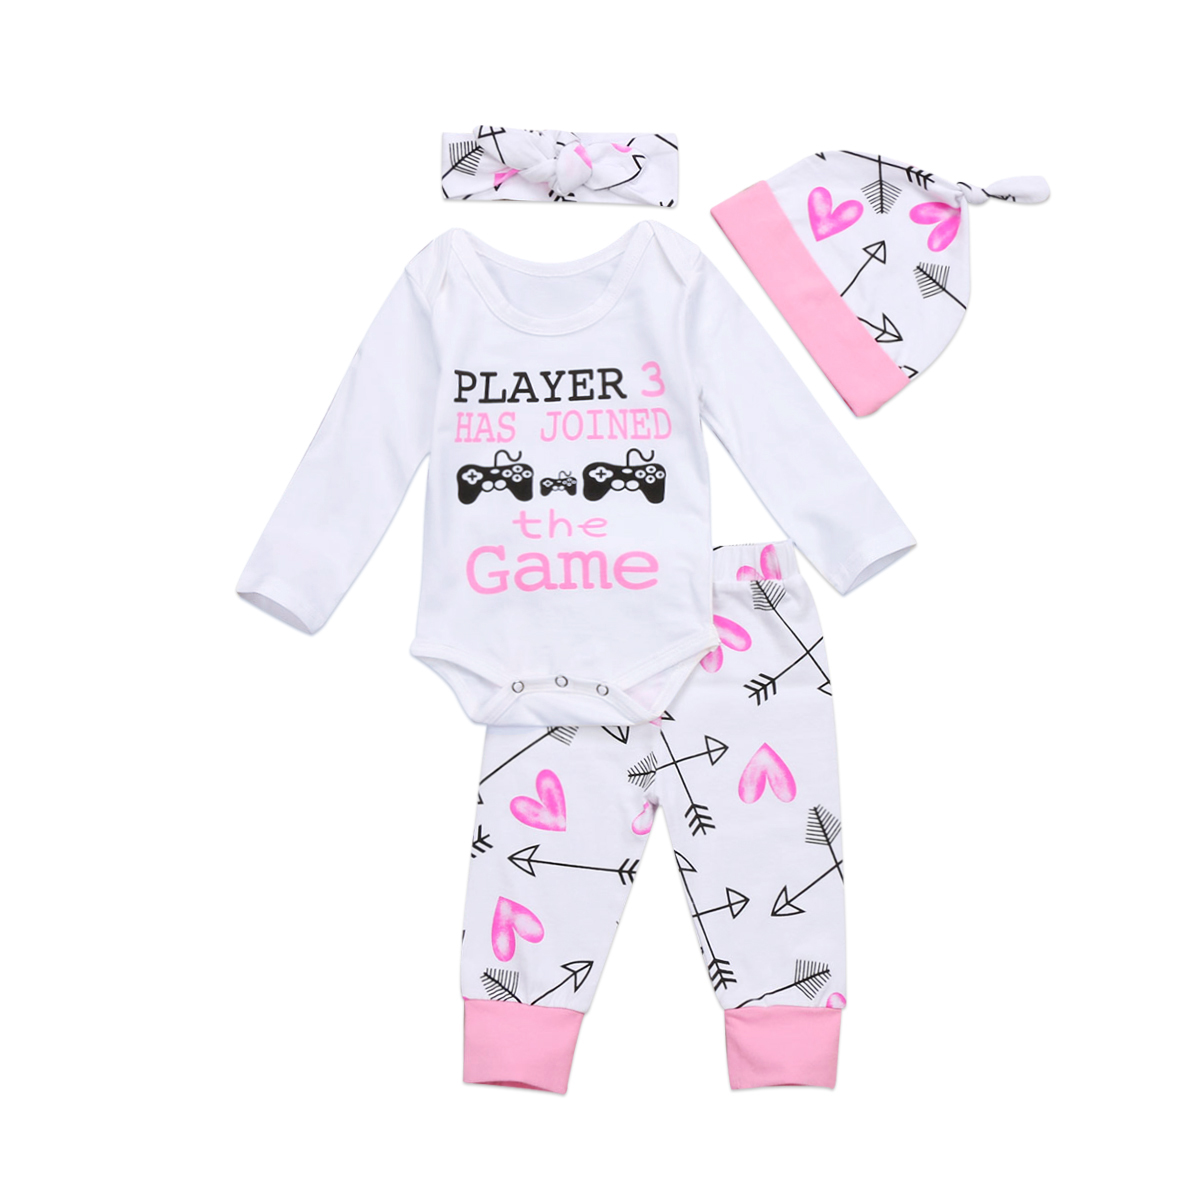 Pudcoco 0-24M Newborn Kids Infant Baby Girls Clothes Game Romper Jumpsuit + Arrow Pants Hat Outfit Headwear 4PCS Set